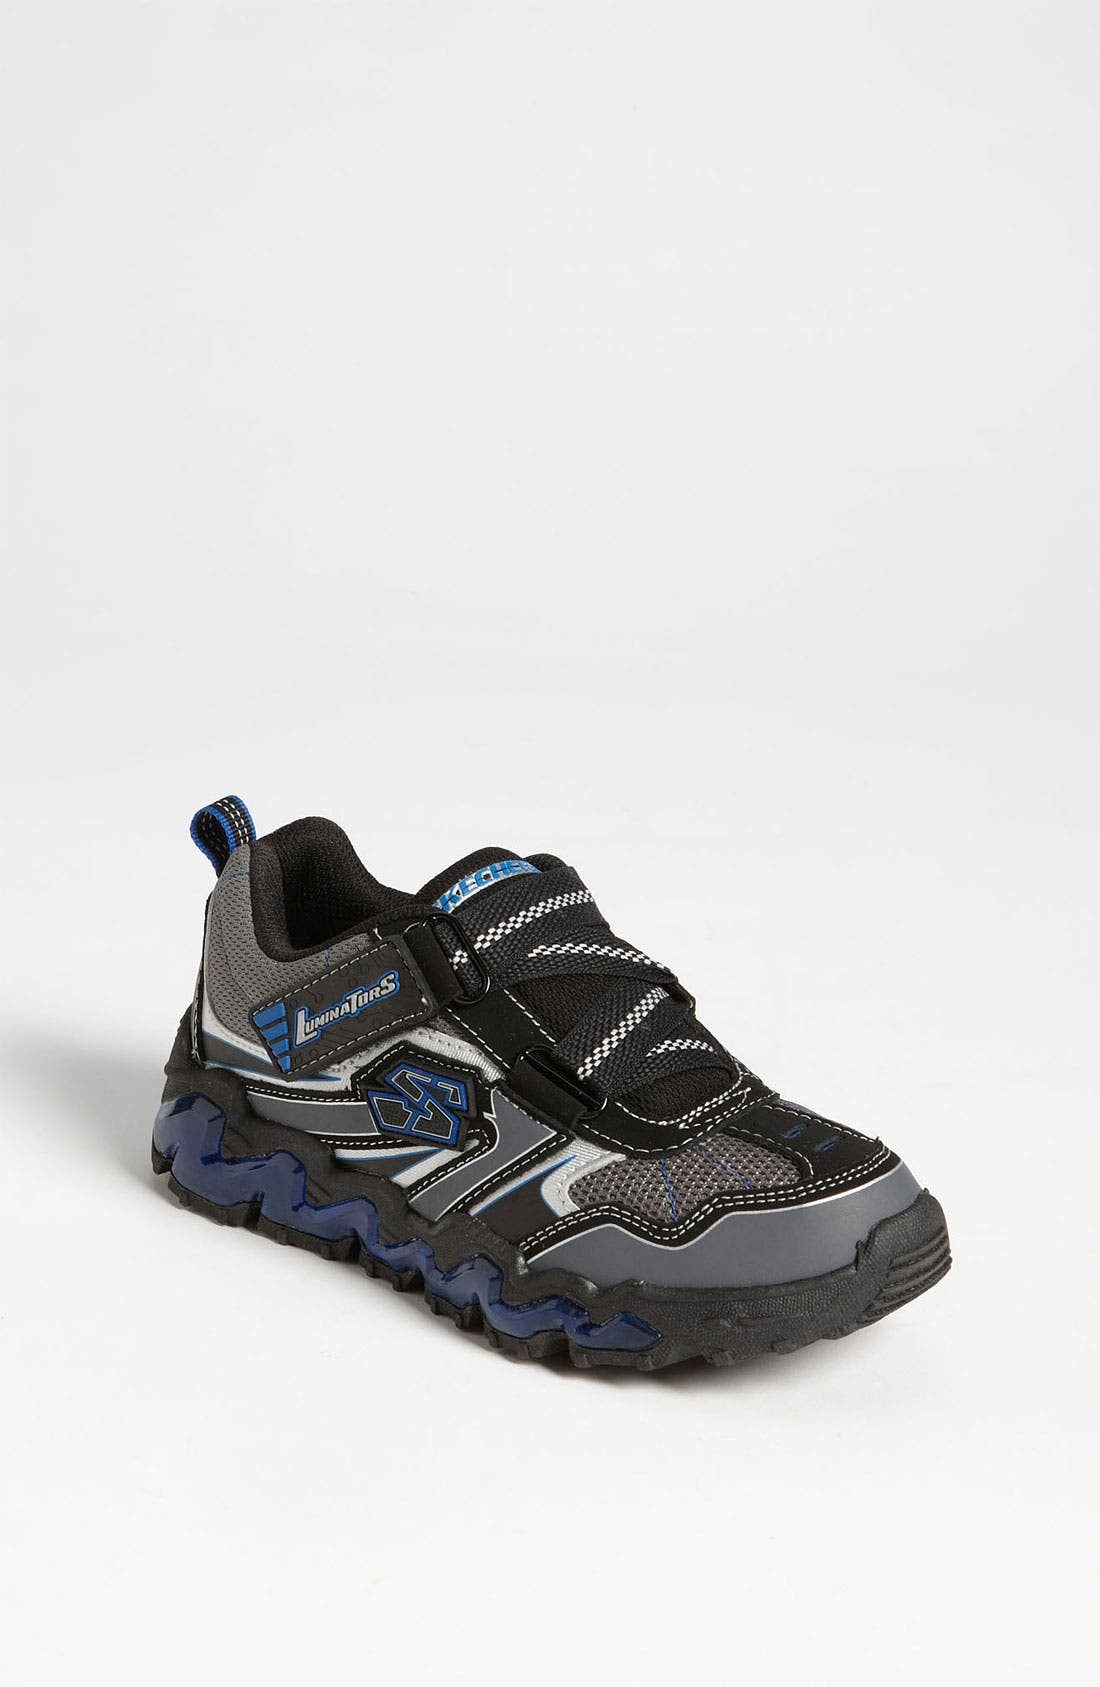 Alternate Image 1 Selected - SKECHERS 'Nova Wave' Light-Up Sneaker (Toddler & Little Kid)